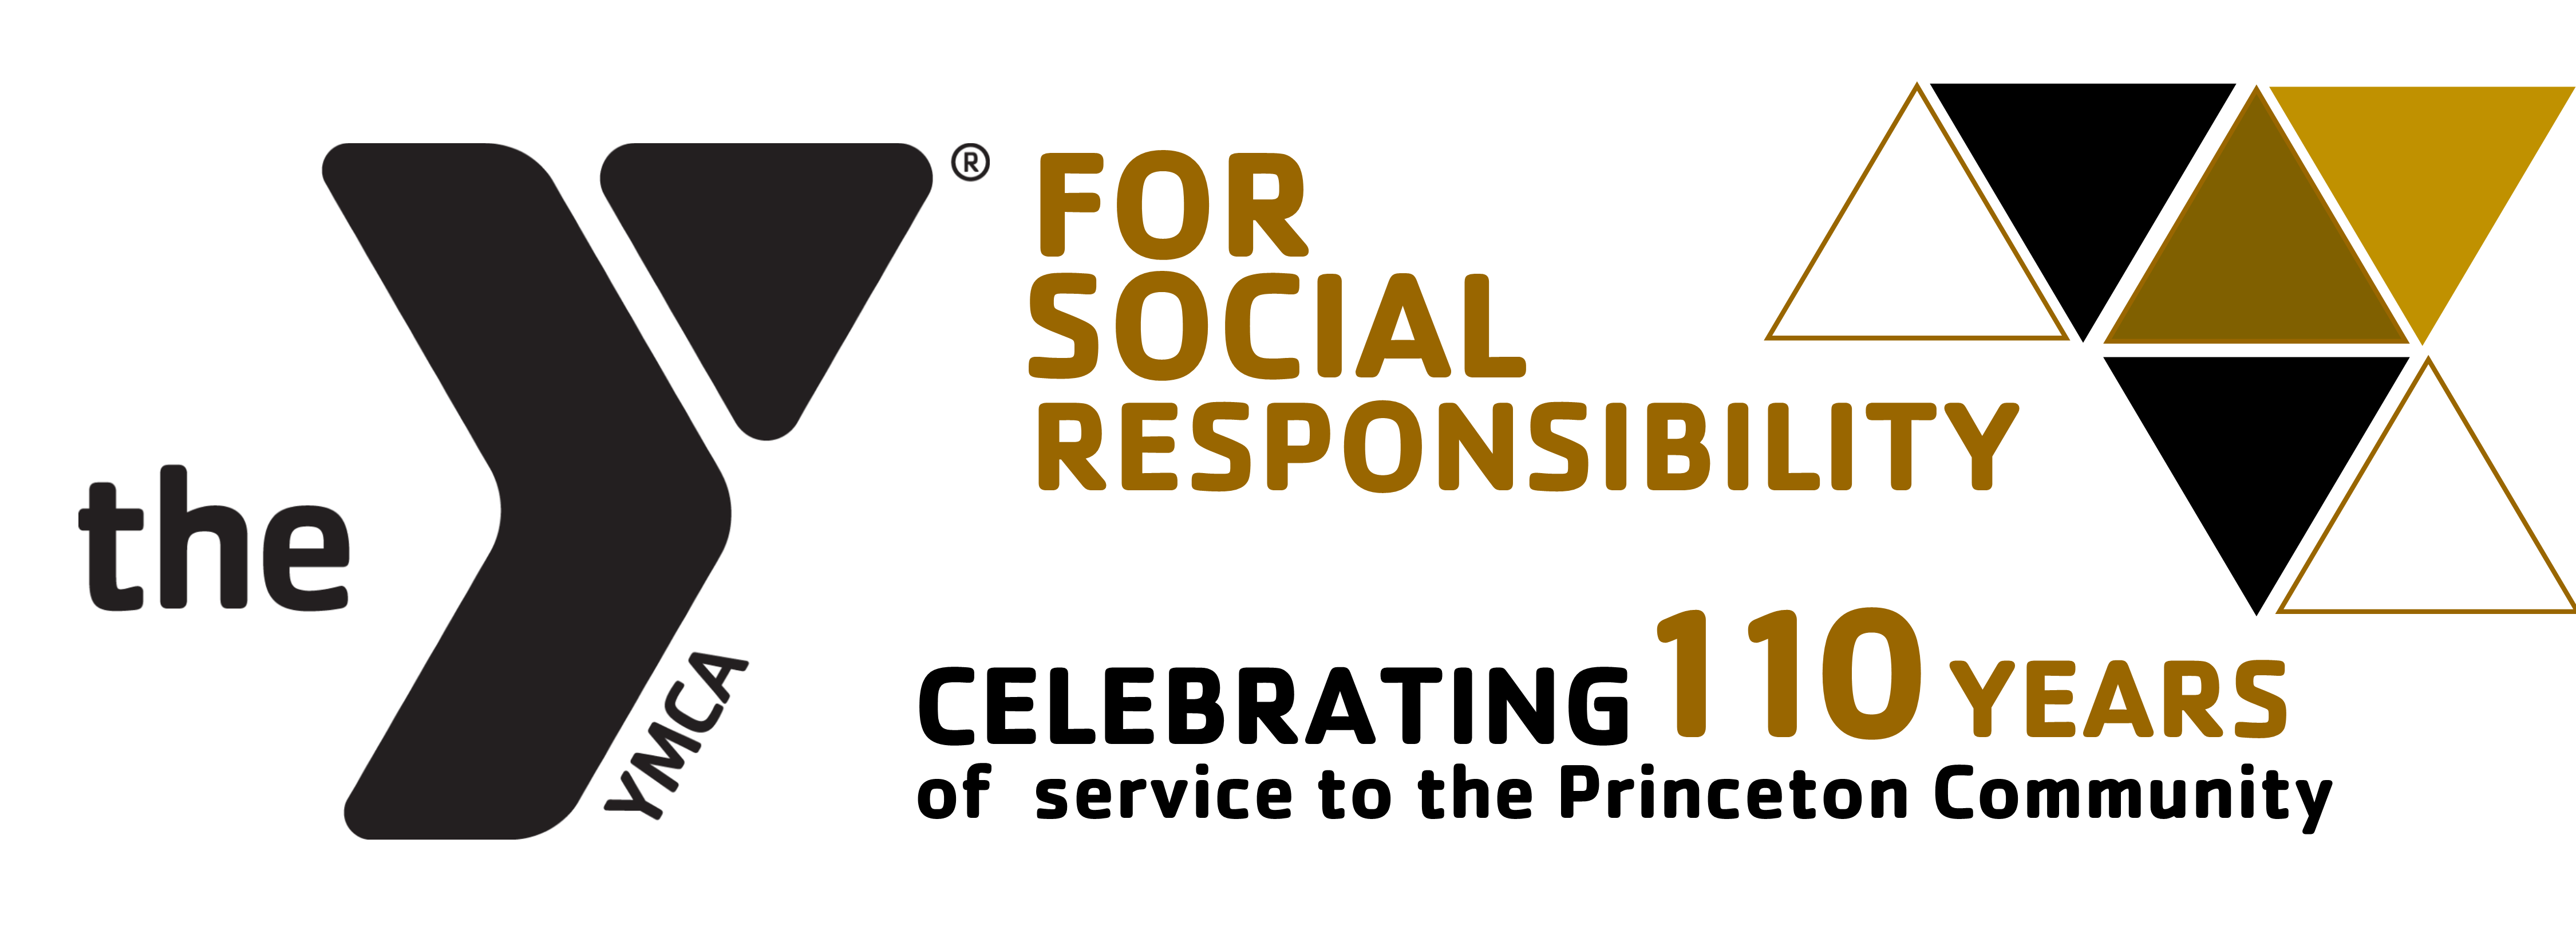 2018 Centennial Awards For Social Responsibility